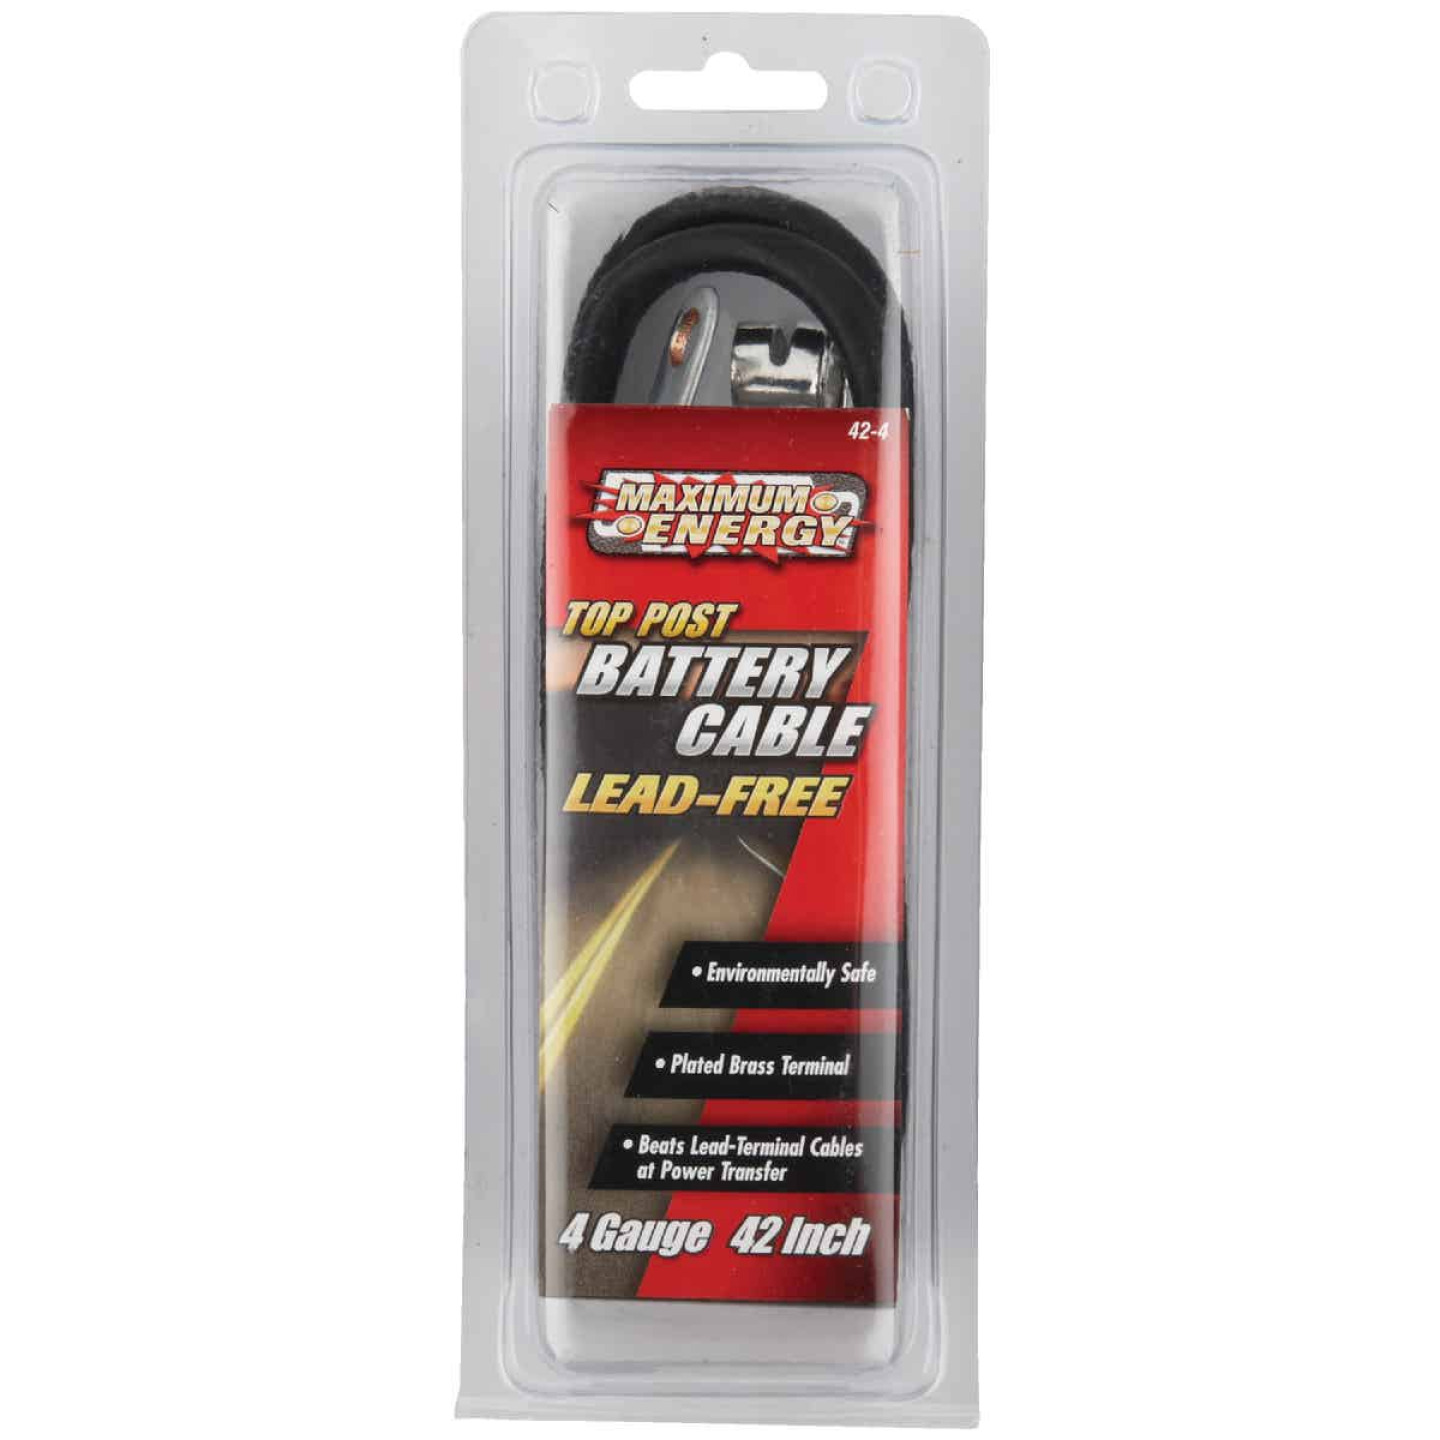 Road Power 42 In. 4 Gauge Top Post Battery Cable Image 2